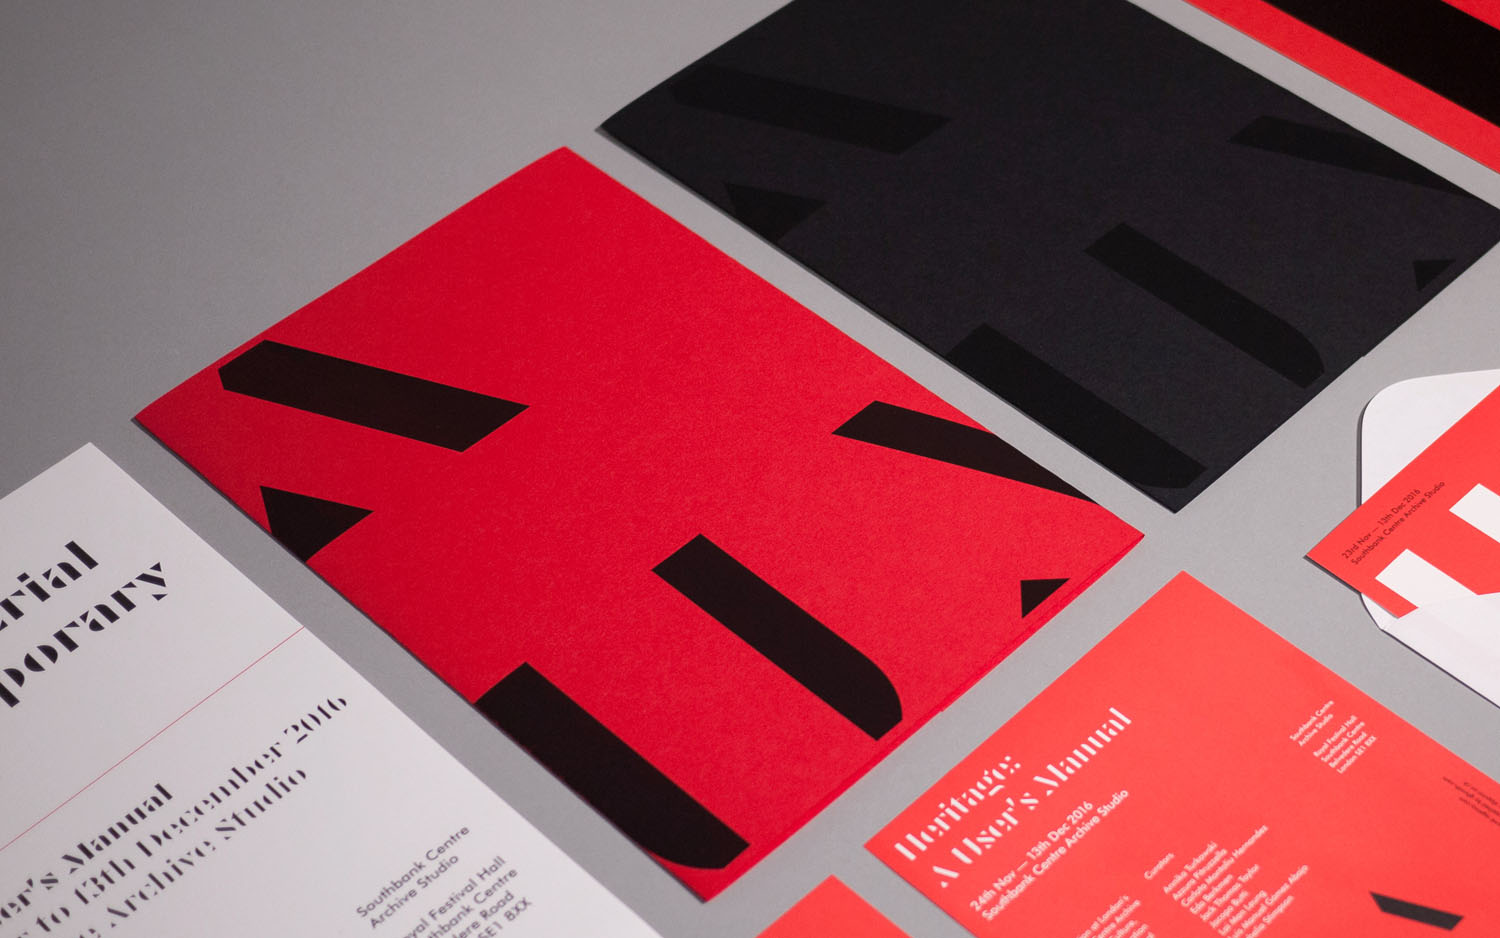 Brand identity and print communication by Bond for Heritage: A User's Manual, an exhibition in London's Southbank Centre